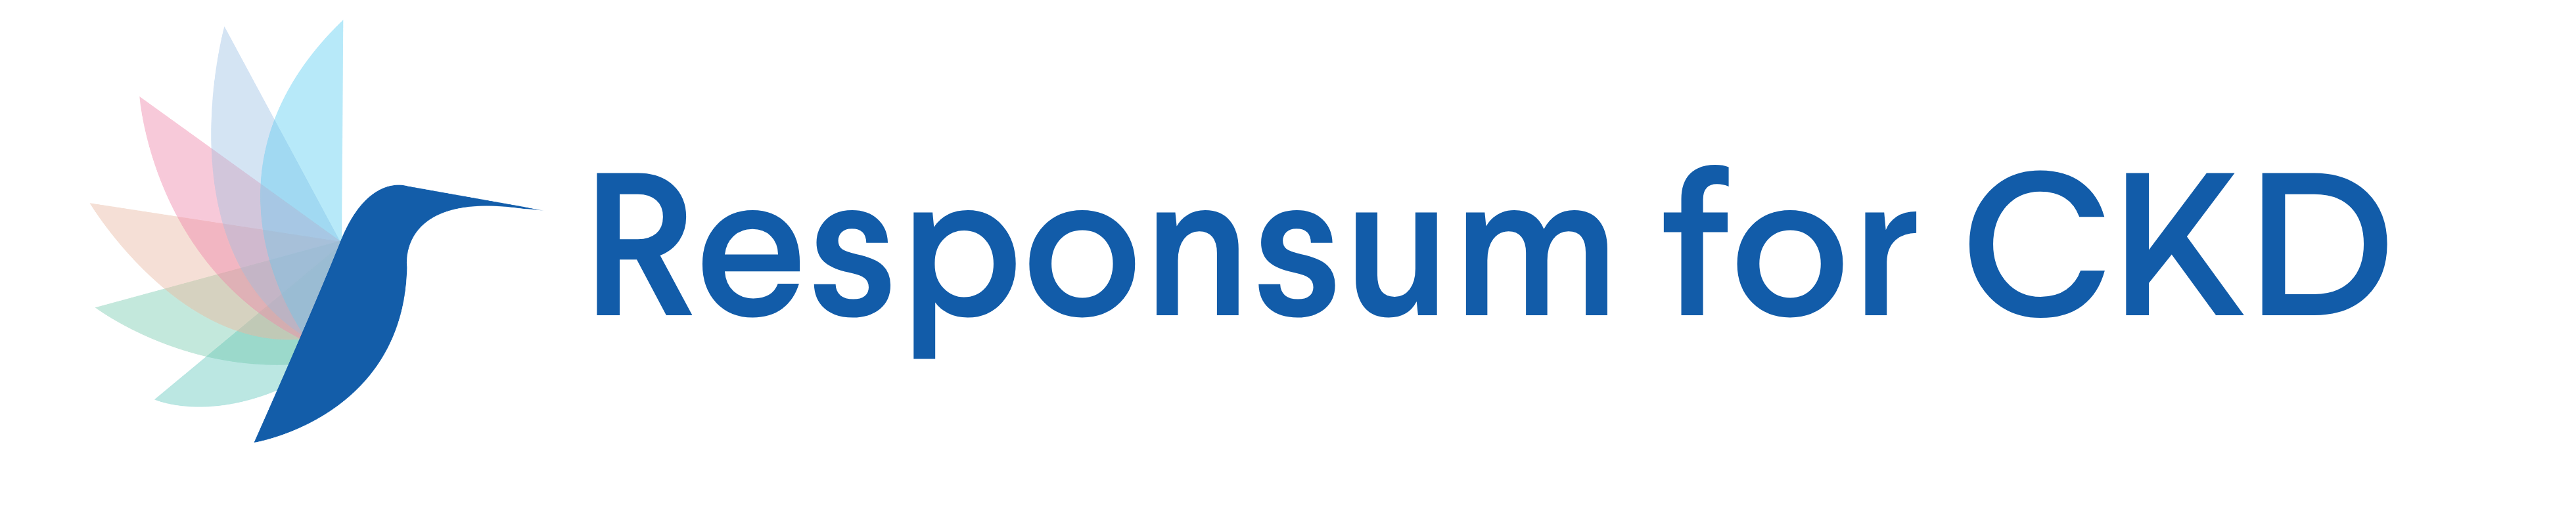 Welcome to Responsum for CKD—Responsum Health